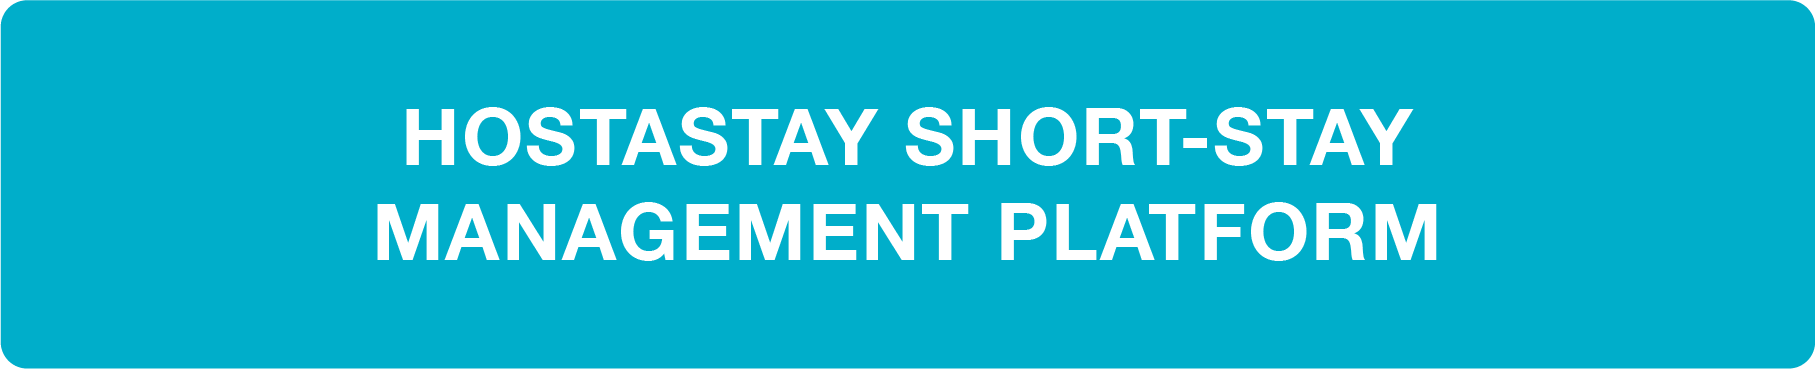 HostAStay Short-Stay Management Platform